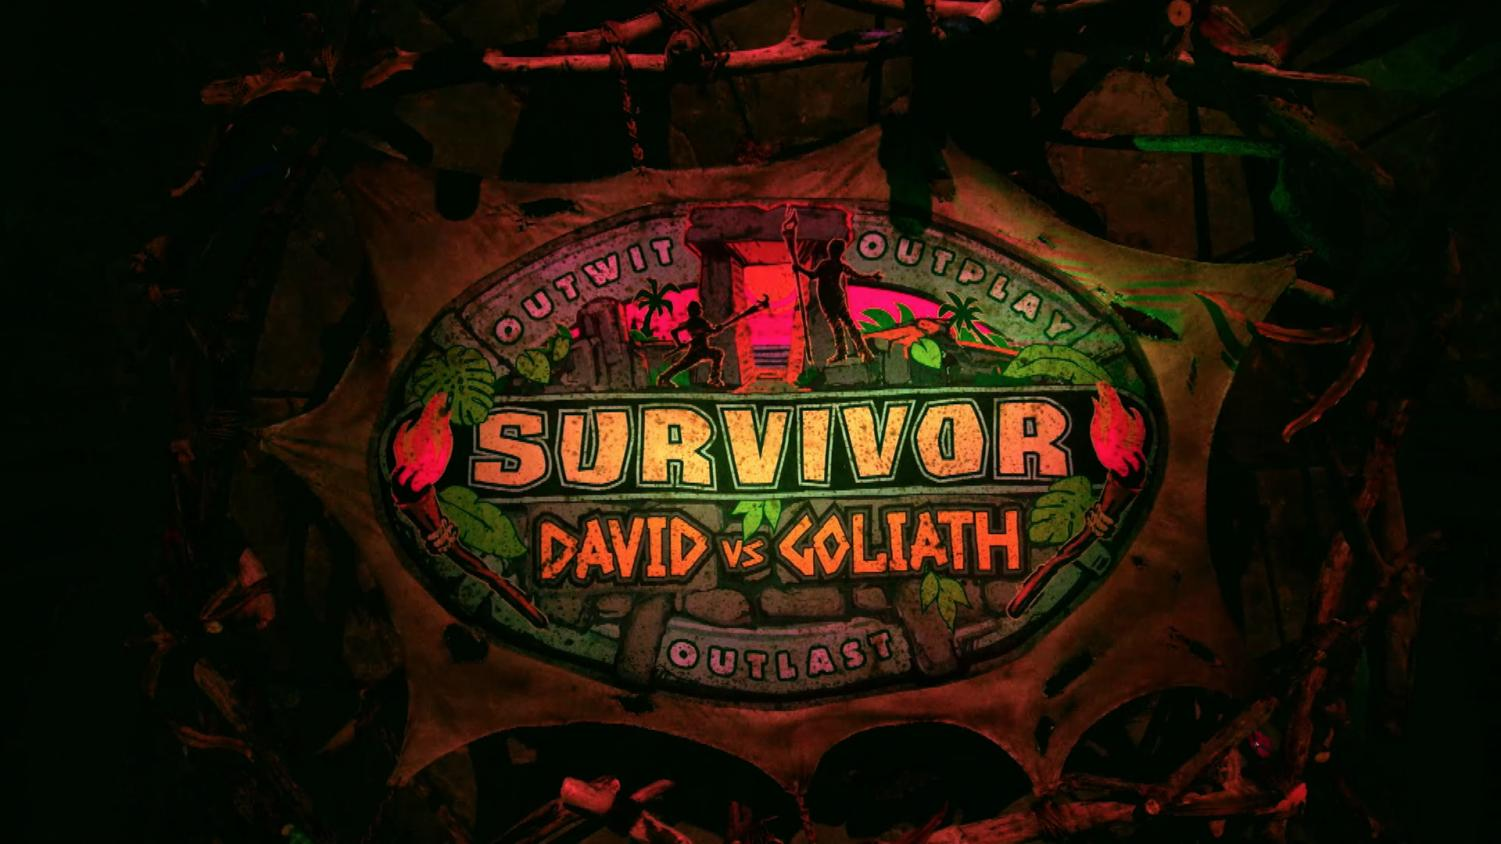 The Survivor banner highlights competition and challenge between the two teams of David and Goliath.